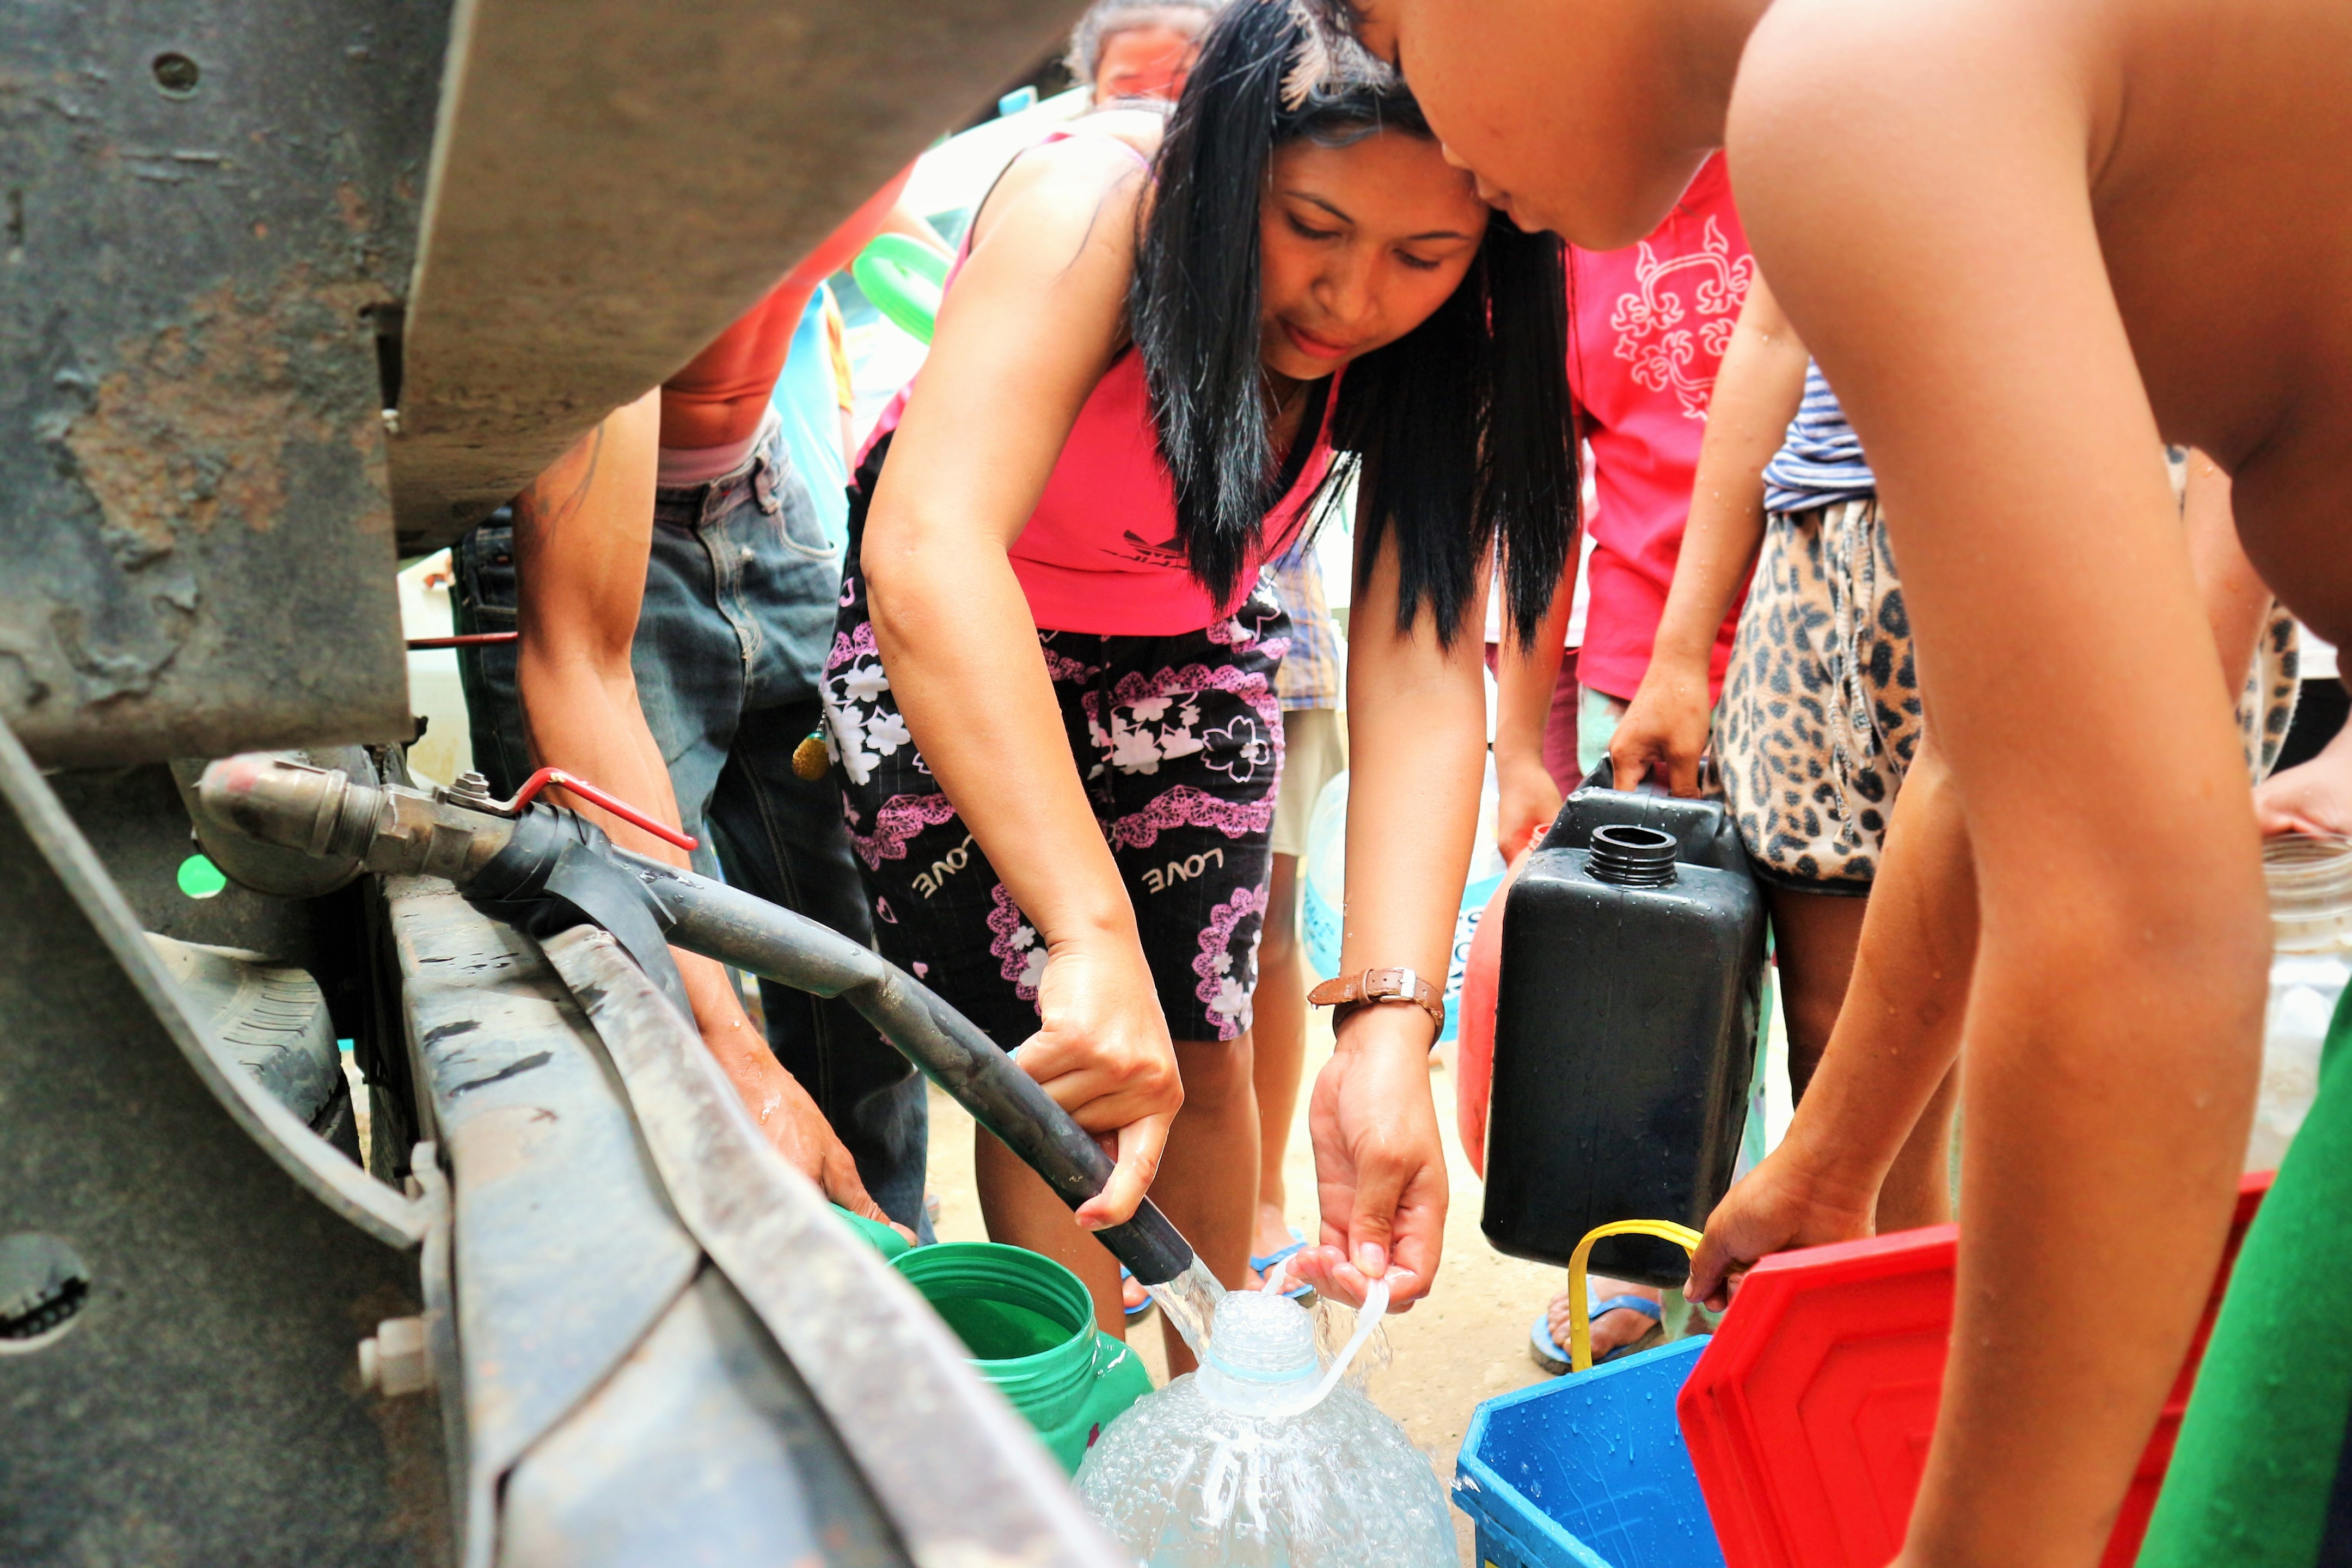 For the past four days, Aboitiz business unit Apo Agua had distributed 473,000 liters of water to various barangays in Kidapawan City and Municipality of Makilala, benefiting over 9,000 displaced families.